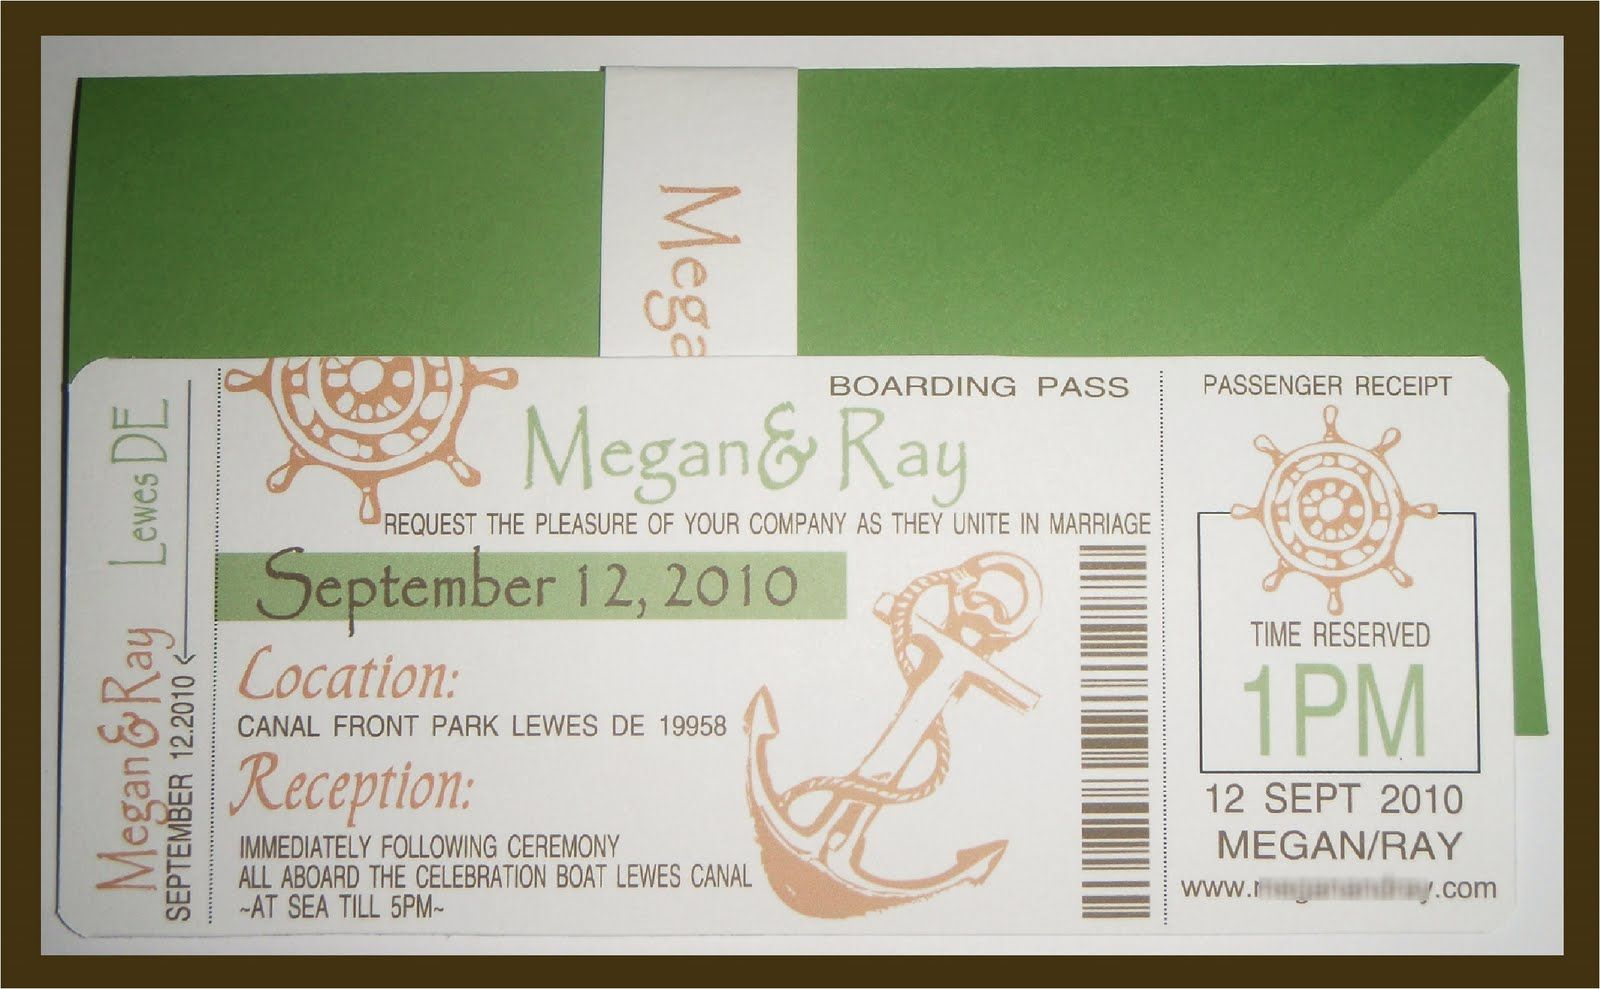 Custom Creations Party Place Megan S Cruise Ship Boarding Pass Boarding Pass Invitation Template Cruise Ship Wedding Invitations Cruise Ship Wedding